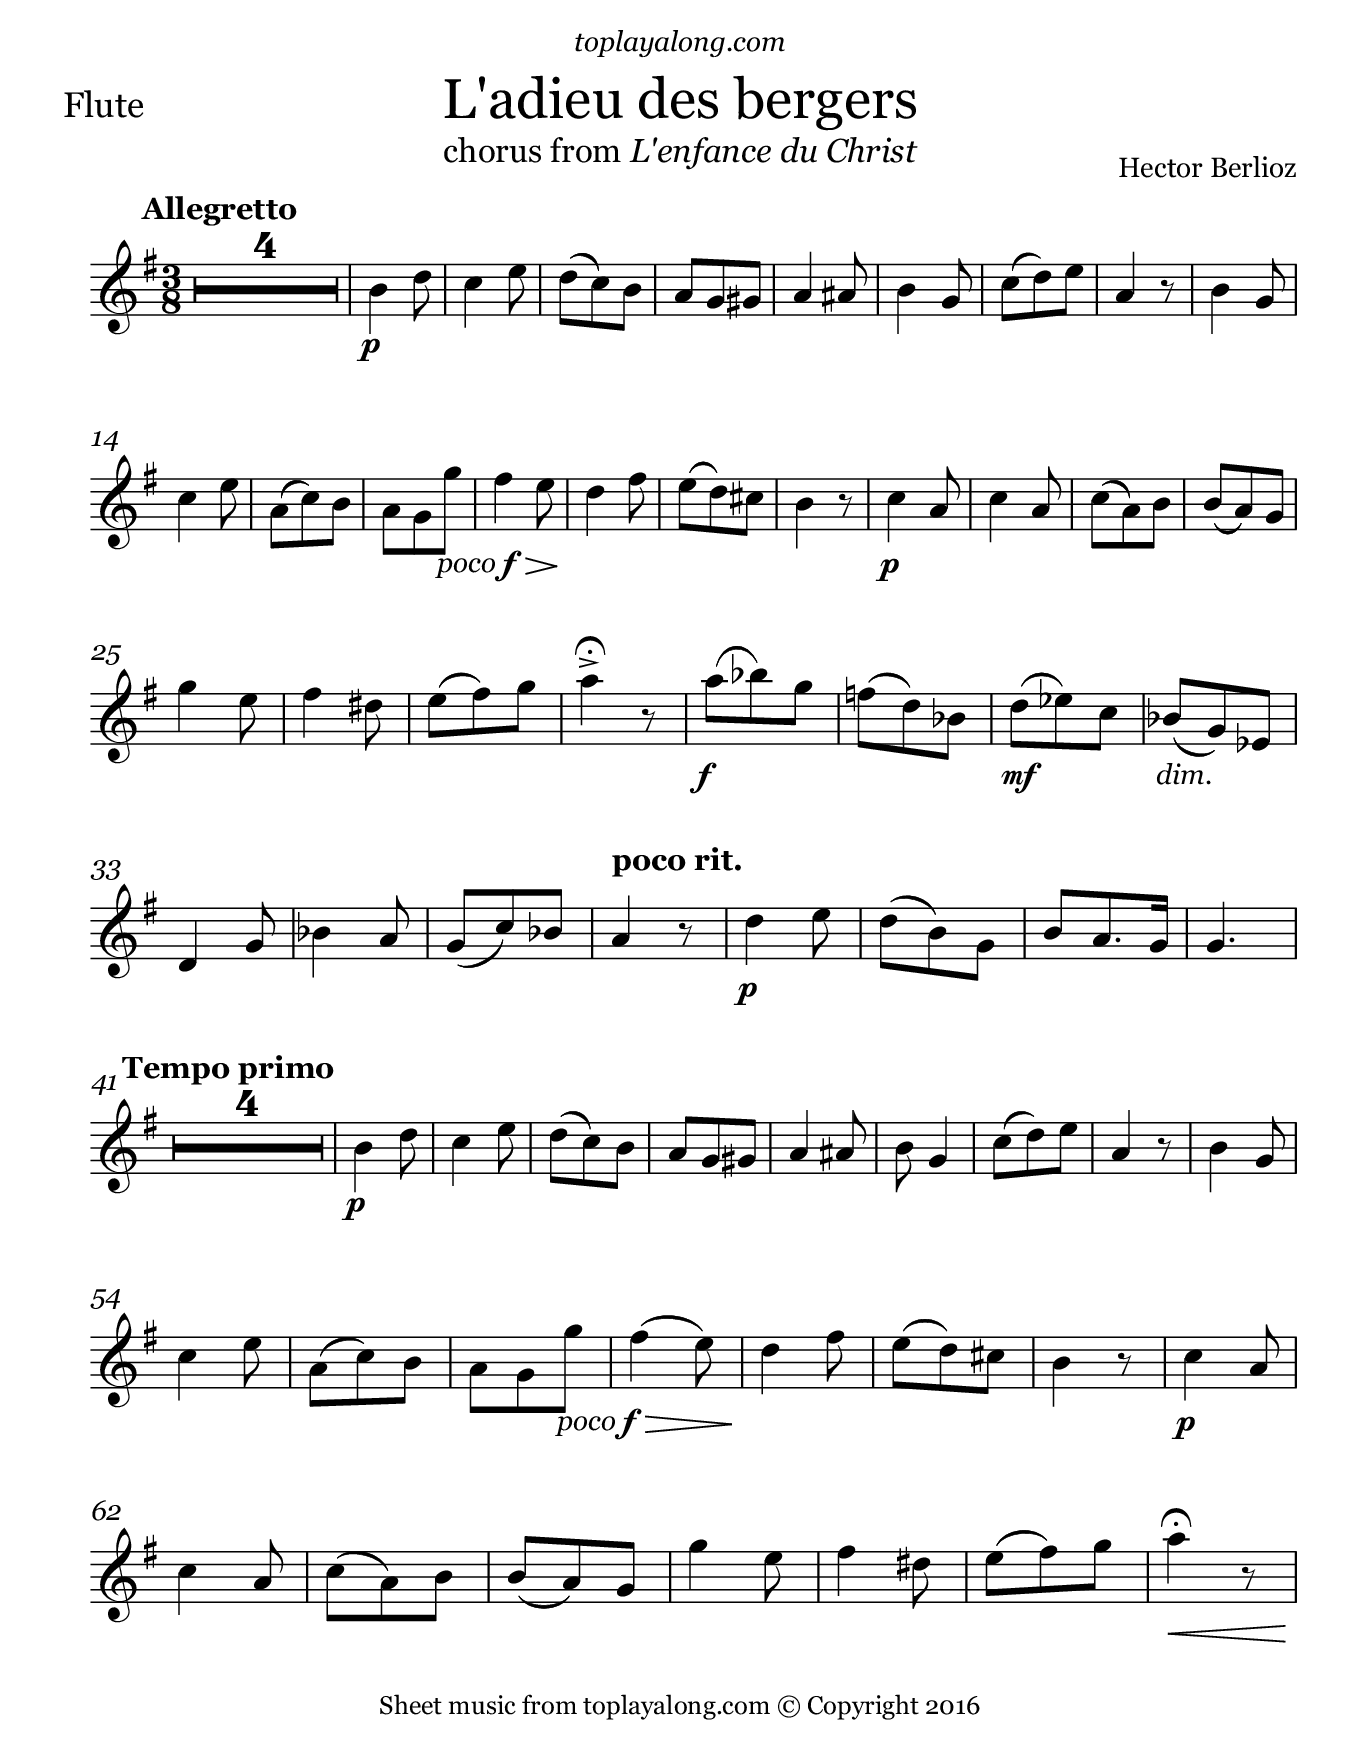 L'adieu des bergers from L'enfance du Christ by Berlioz. Sheet music for Flute, page 1.